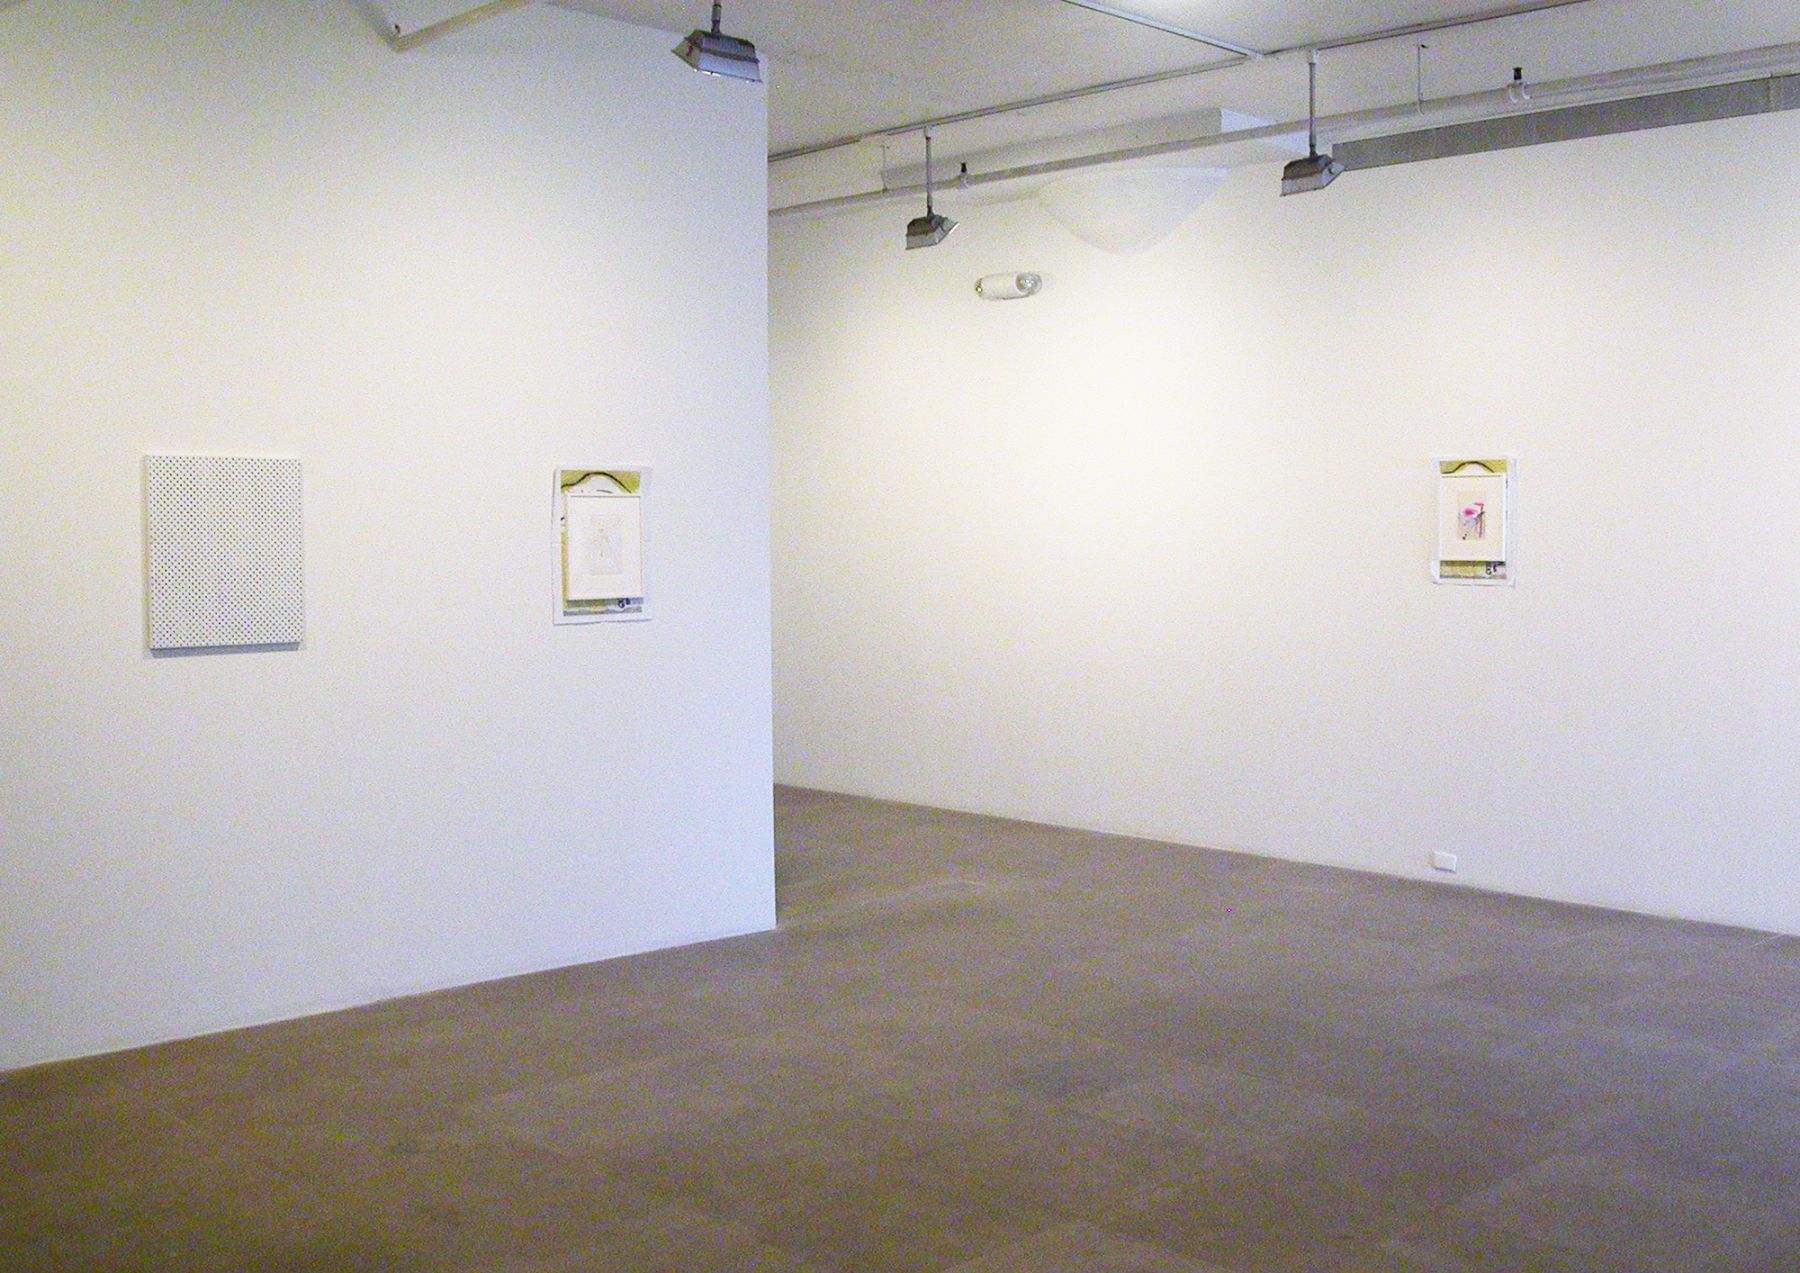 Installation view, Connecting Sugar with Hollywood, Greene Naftali, New York, 2006